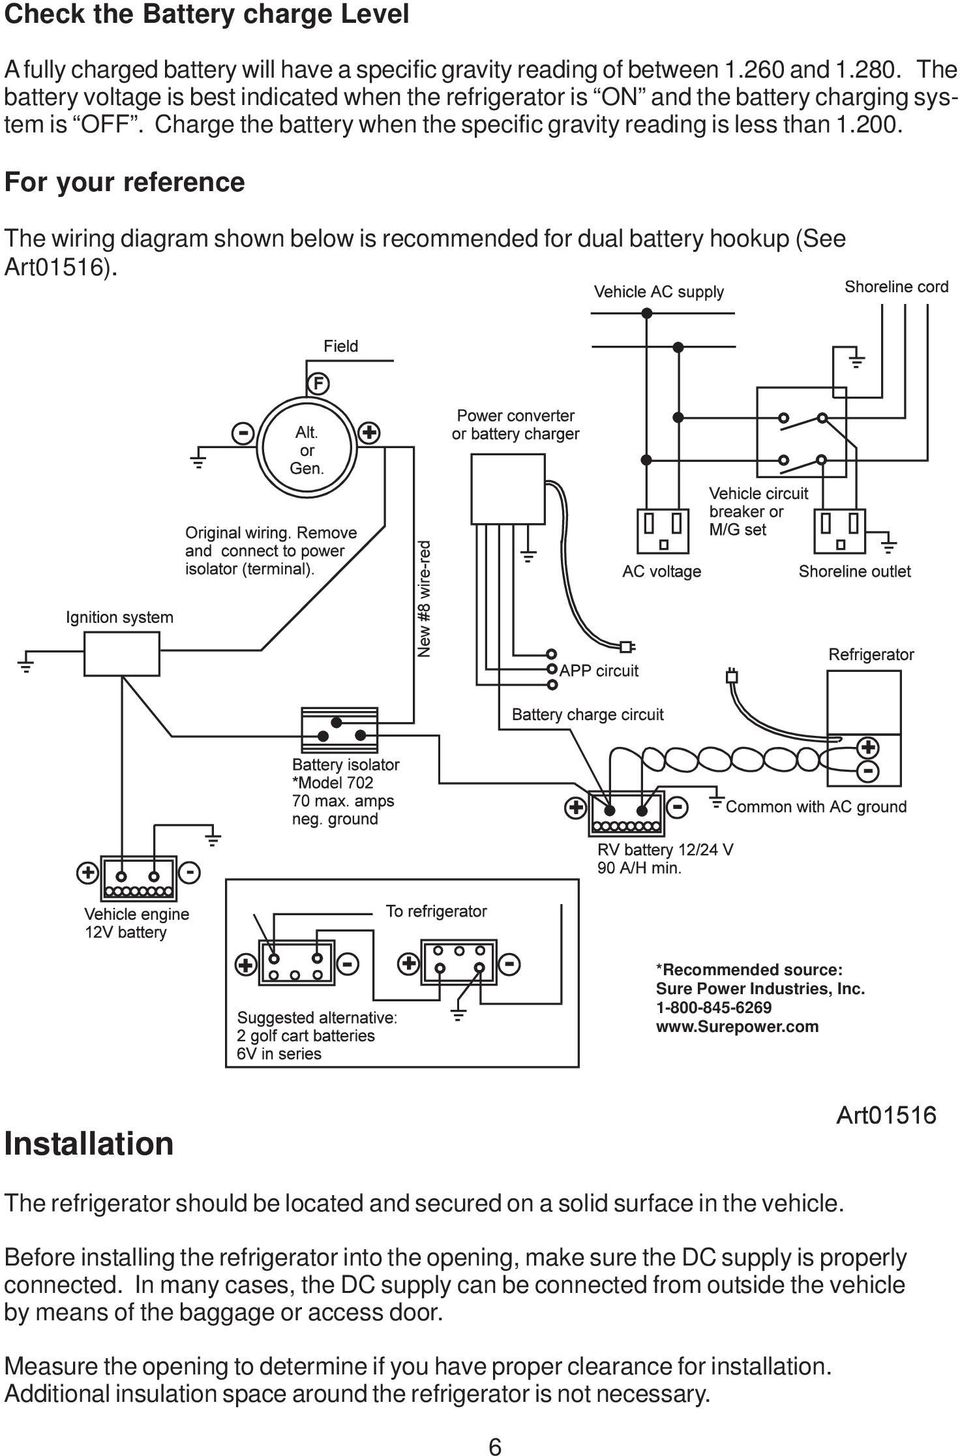 hight resolution of for your reference the wiring diagram shown below is recommended for dual battery hookup see